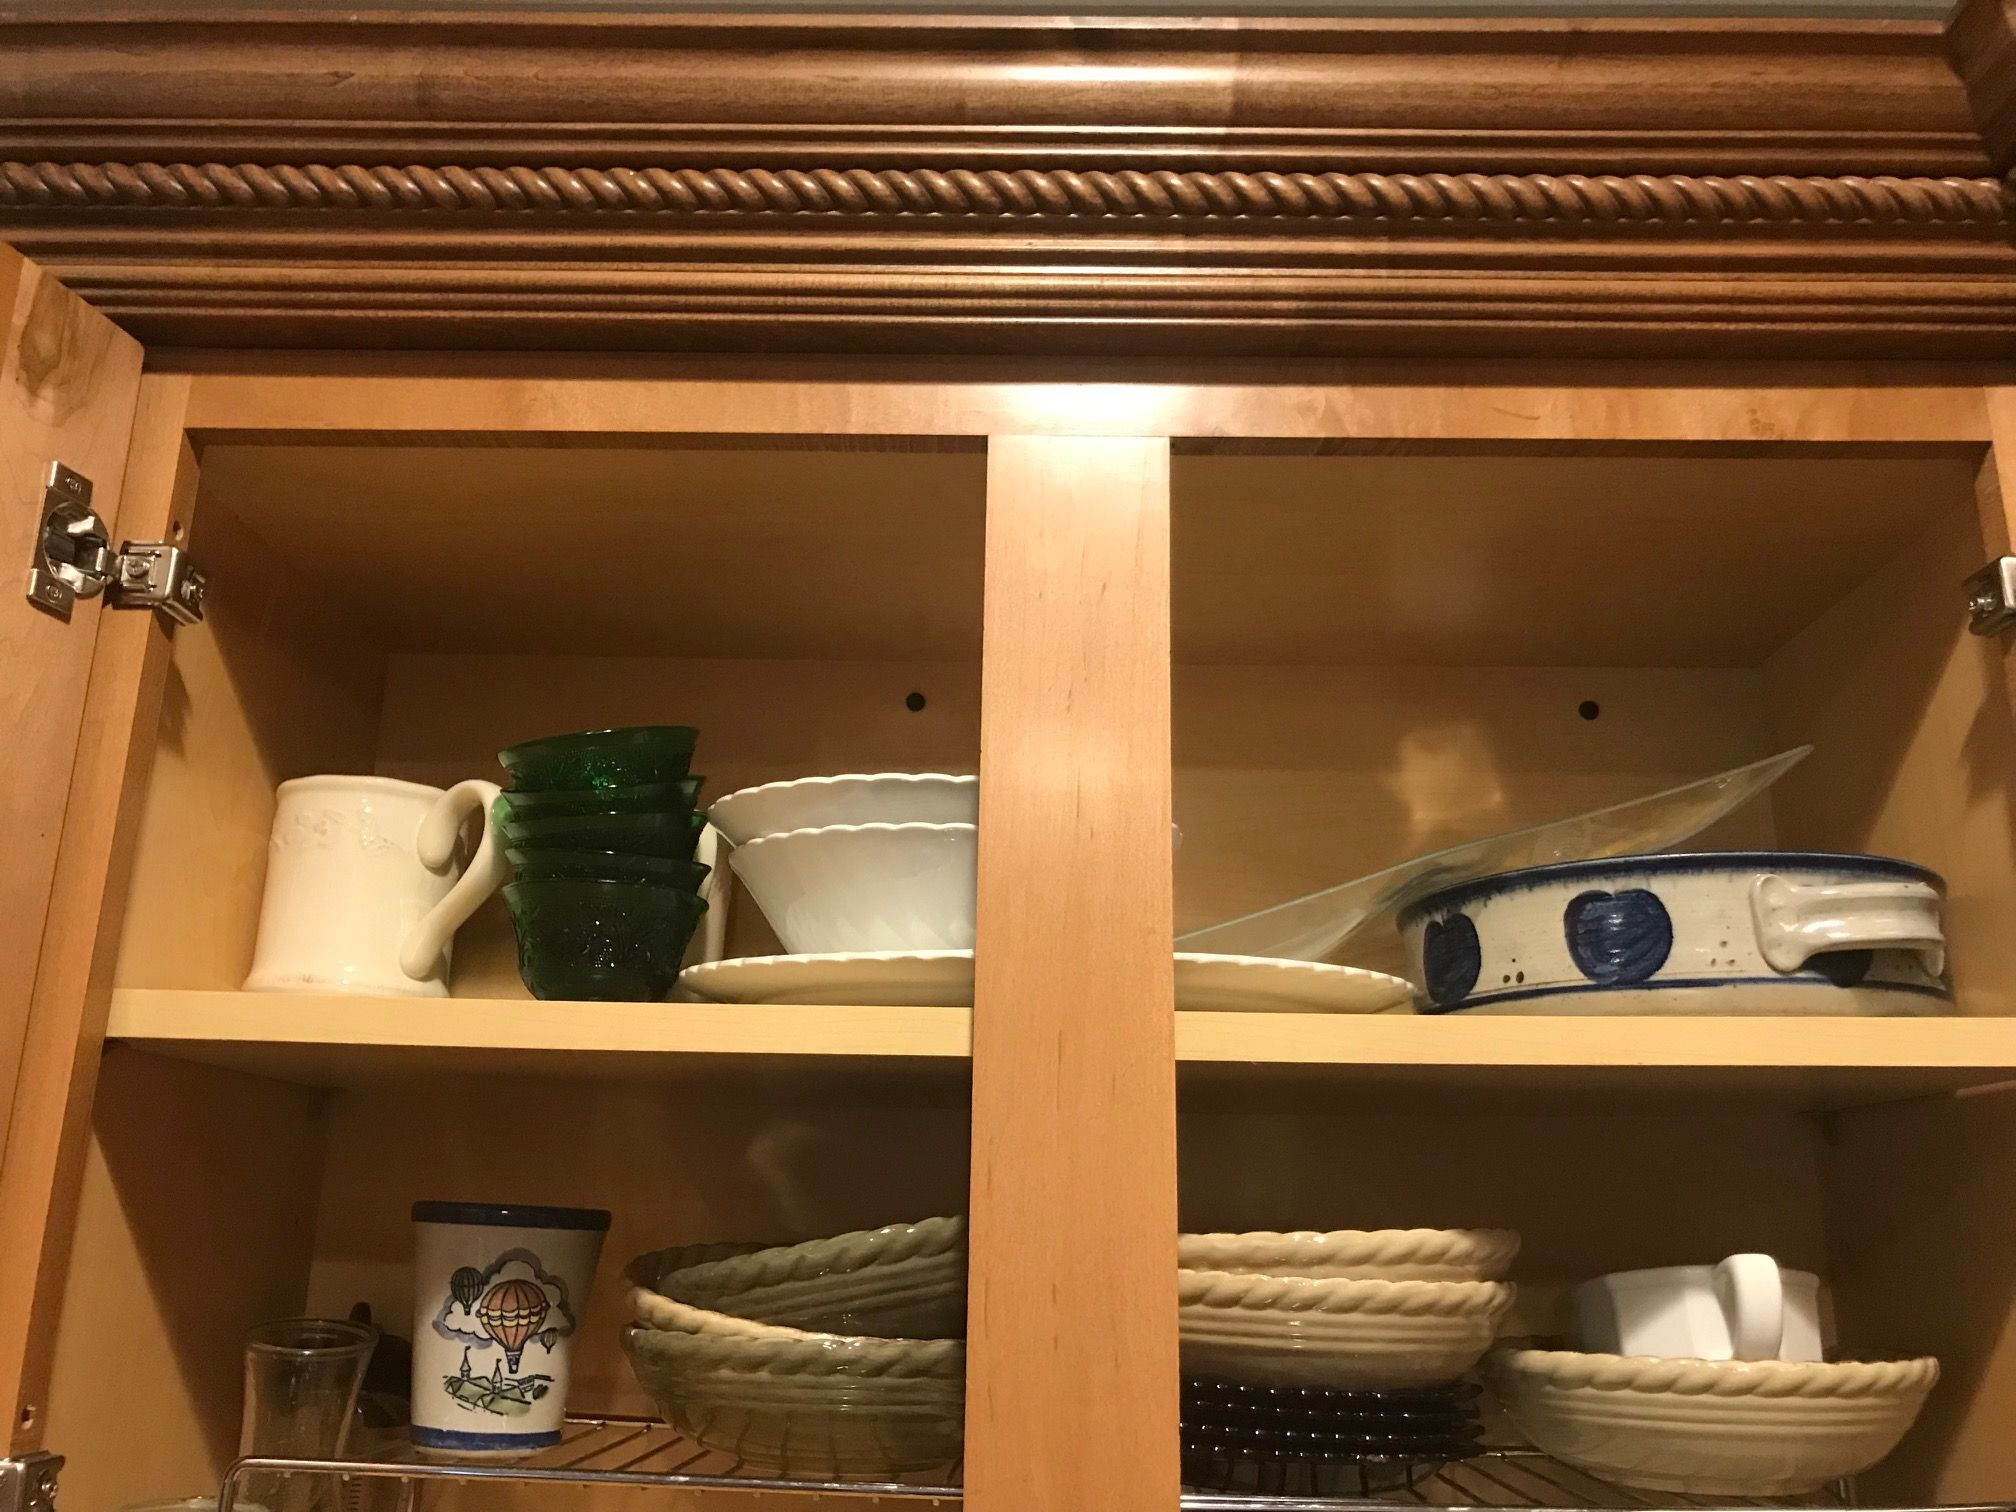 Replacement Kitchen Cabinet Shelving In 2020 Kitchen Cabinet Shelves Kitchen Cabinets And Countertops Replacement Shelves